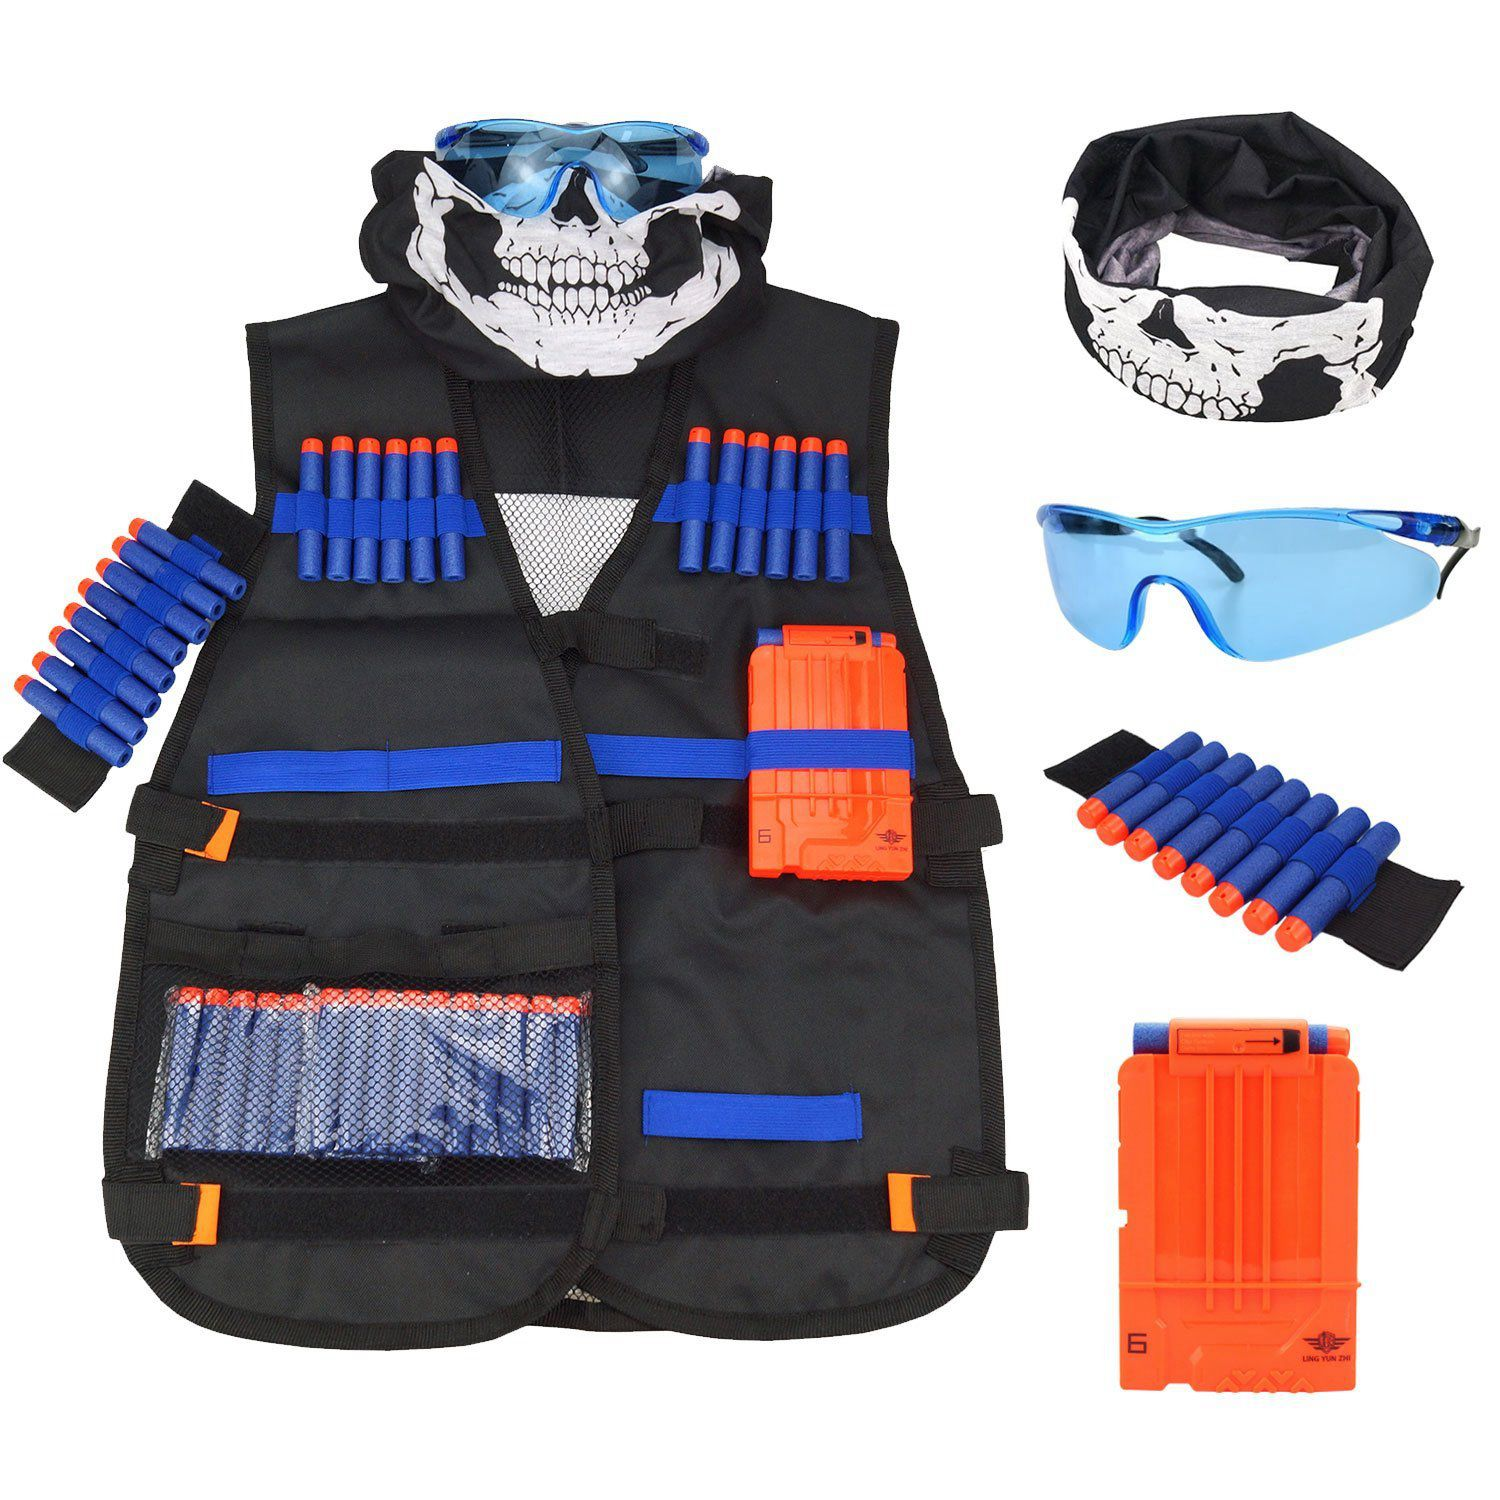 ChildrenBlack Tactical Gun Accessories  Waistcoat Ammo Holder Elite Pistol Bullets Toy Clip Darts For Nerf